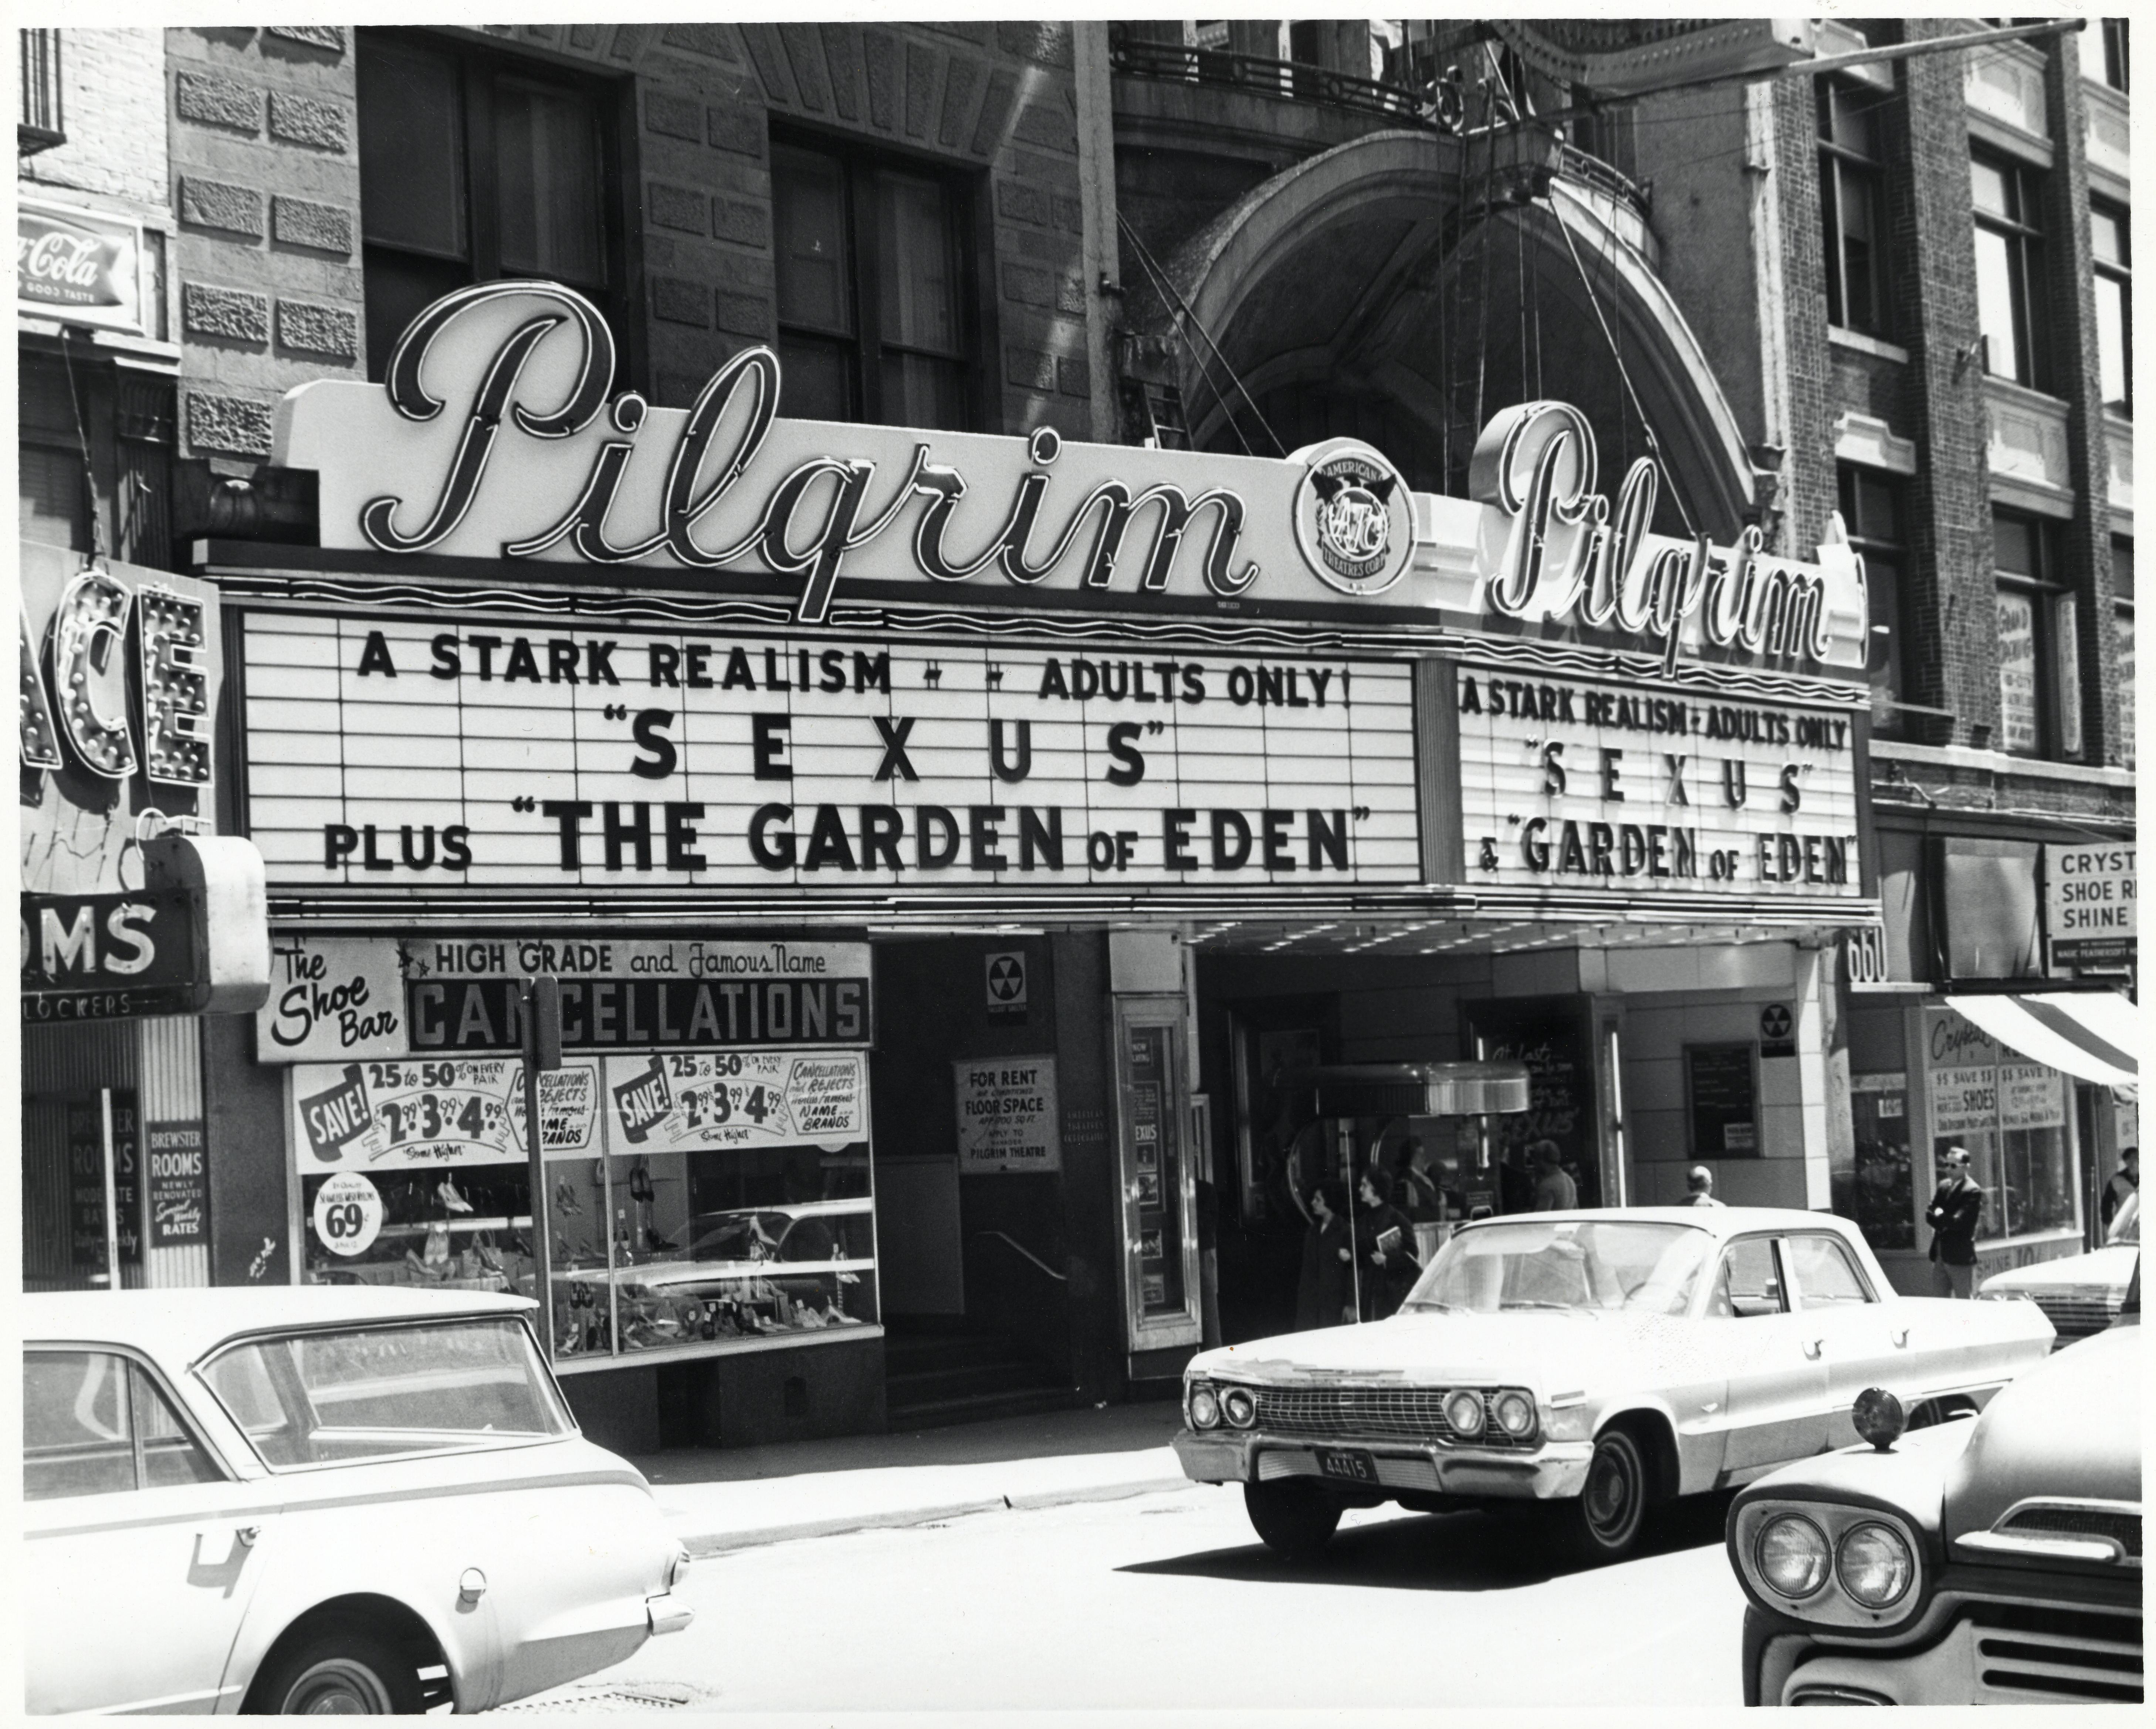 filemarquee at pilgrim theatre on washington street